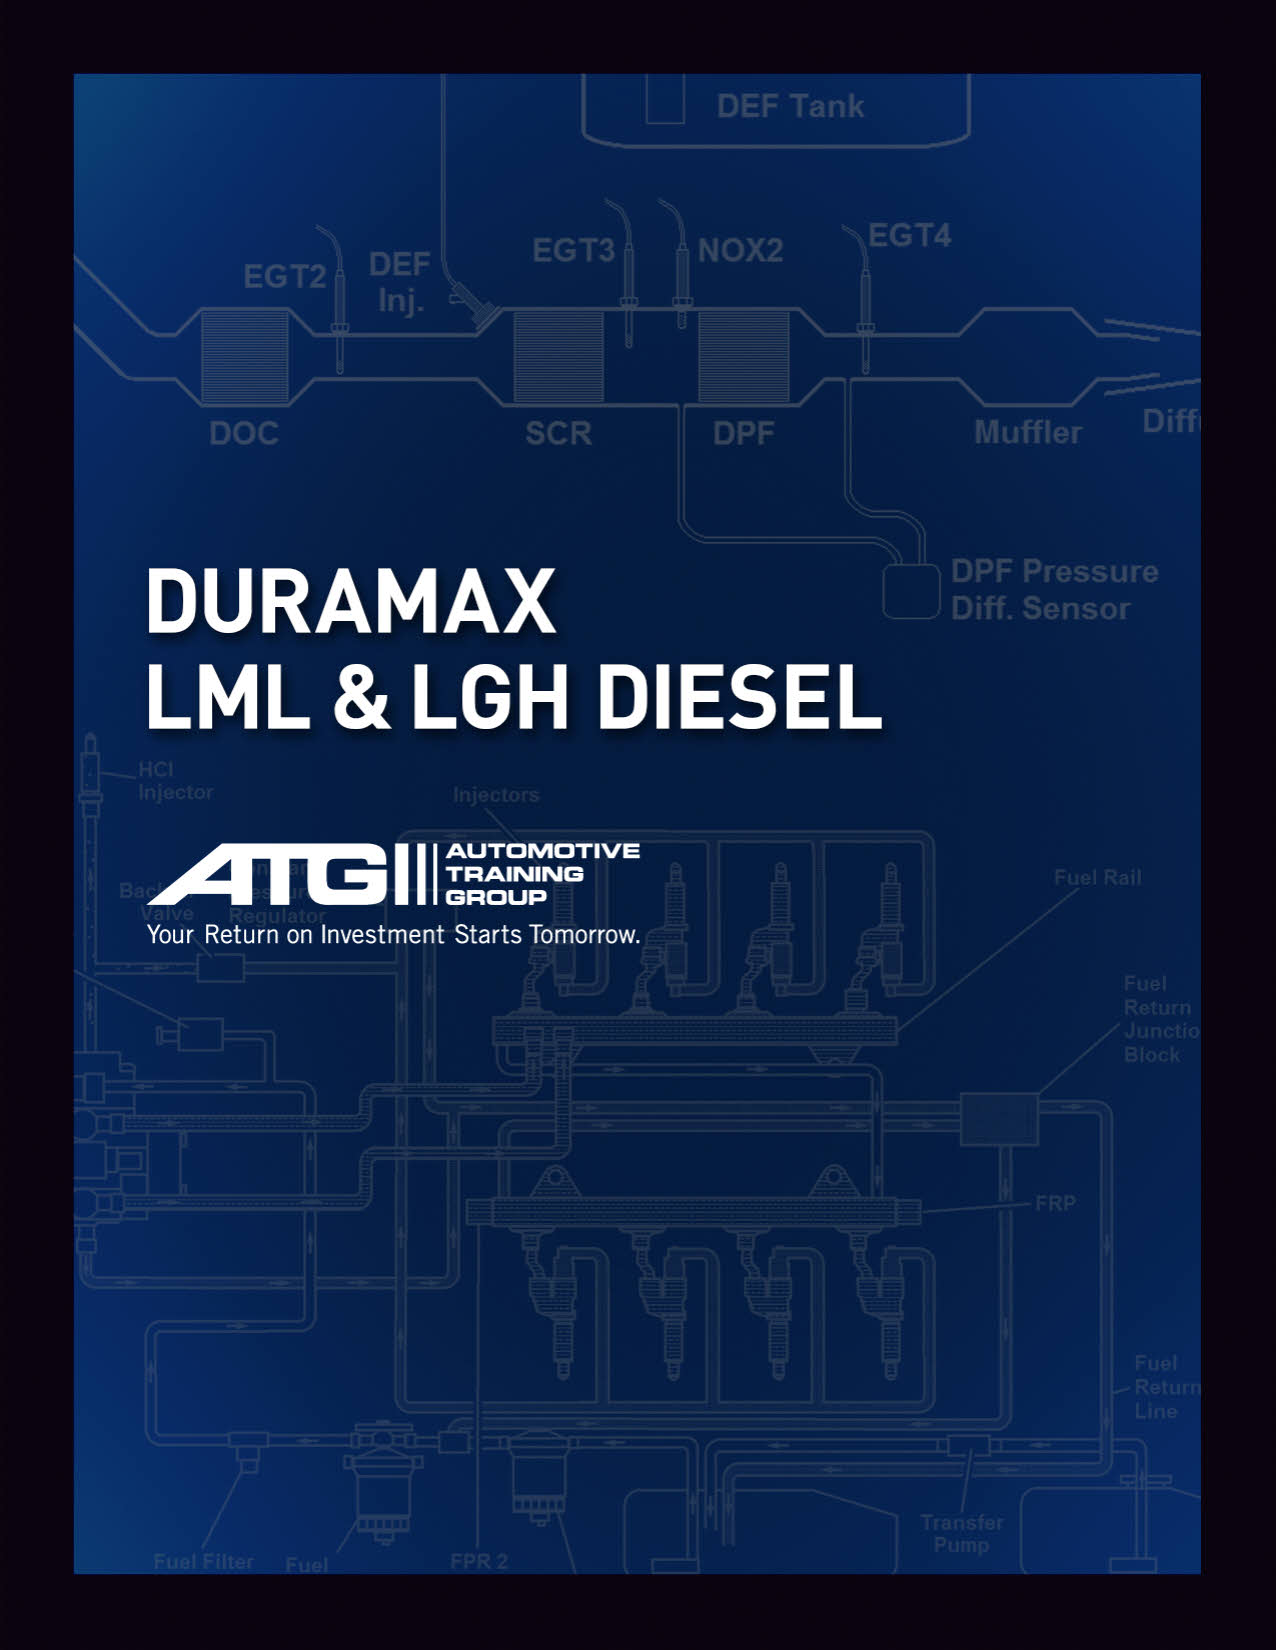 General Motors Duramax LML & LGH Diesel Diagnostics